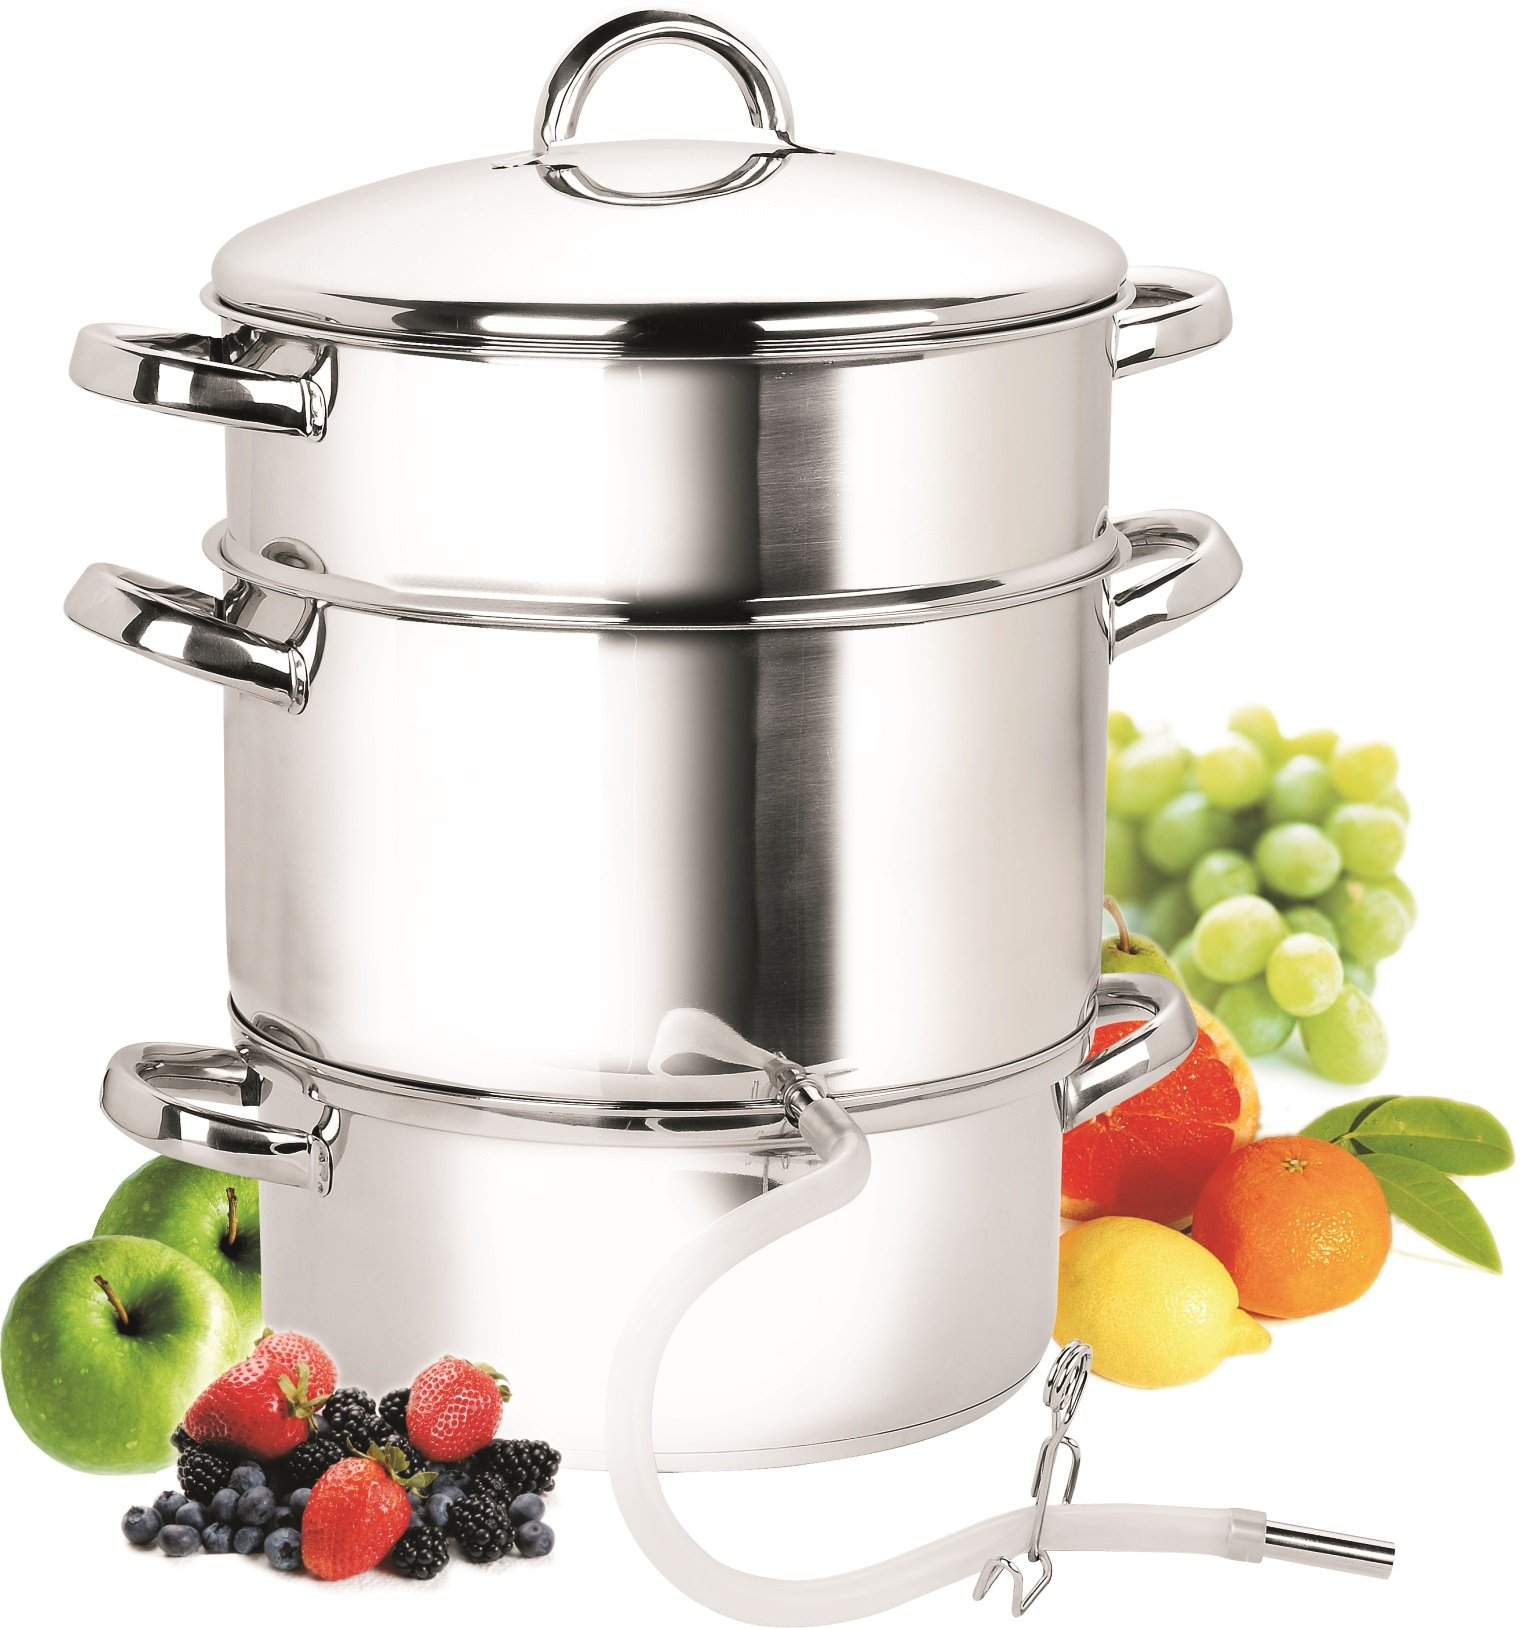 Cook N Home NC-00256 28cm 11-Quart Stainless Steel Fruit Juicer Steamer Multipot, Silver by Cook N Home